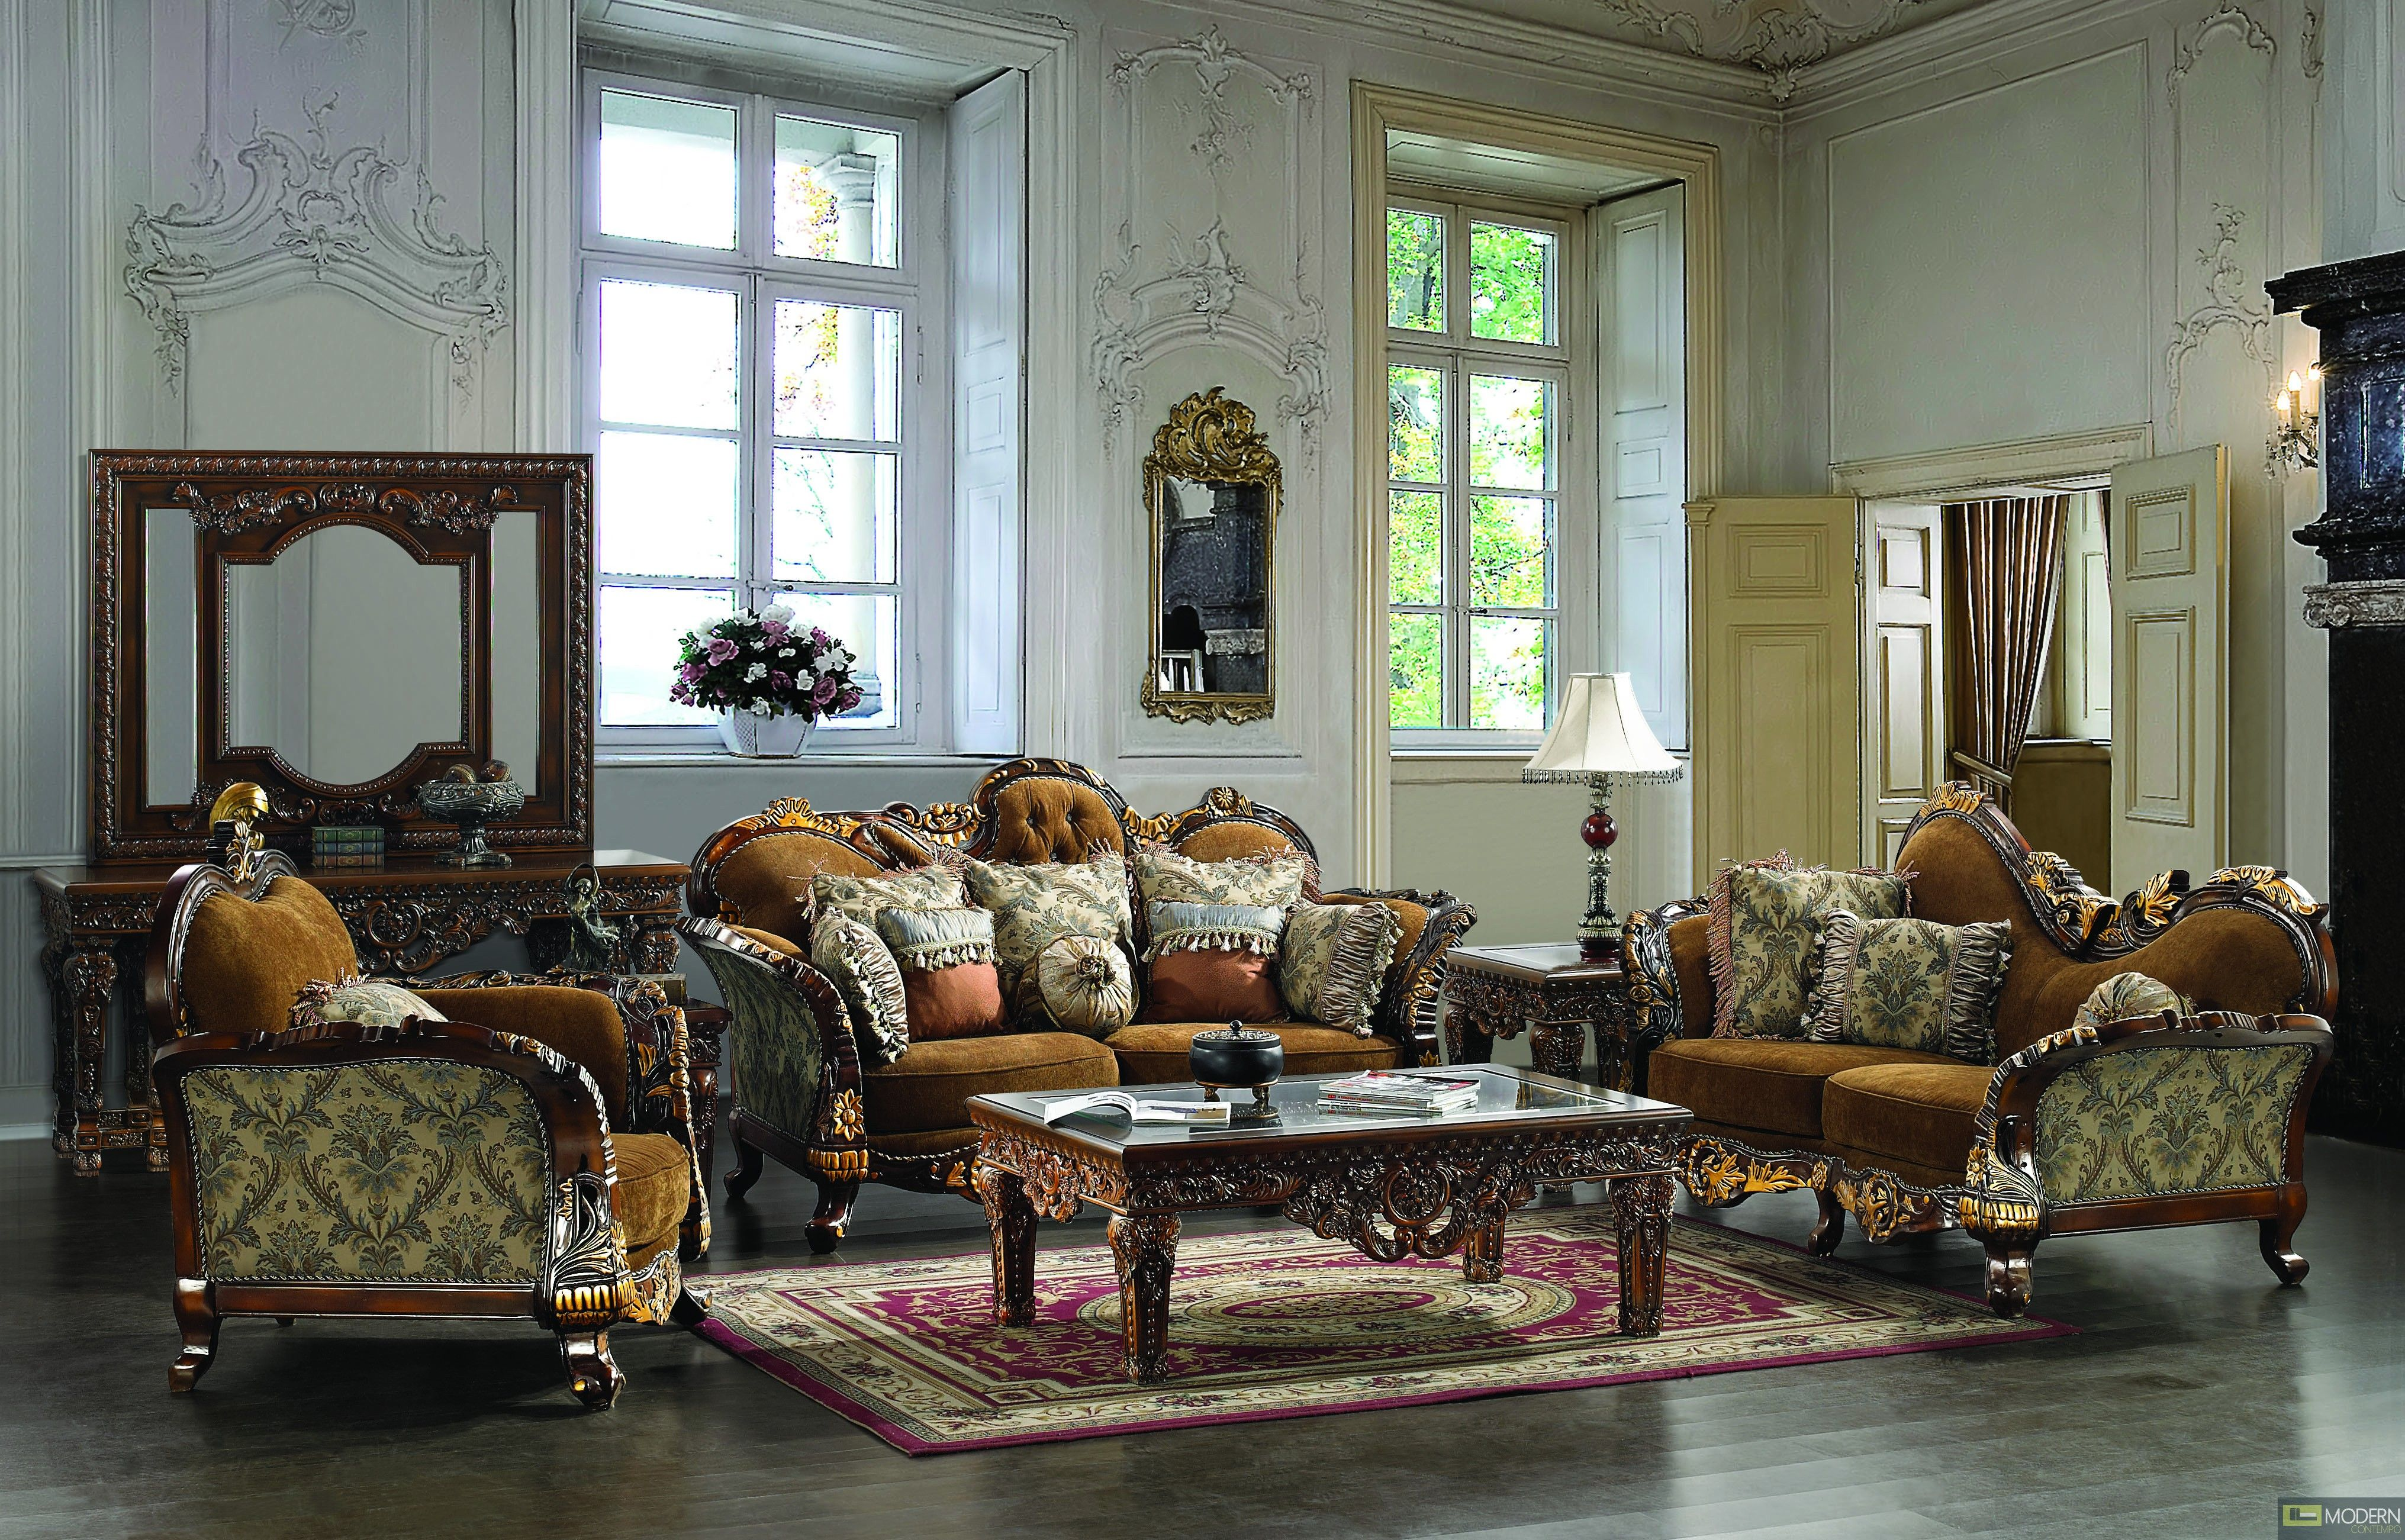 French formal living room - Perfect French Formal Living Room Furniture Ideas With Large Square Windows As Well As Dark Wooden Flooring Ideas